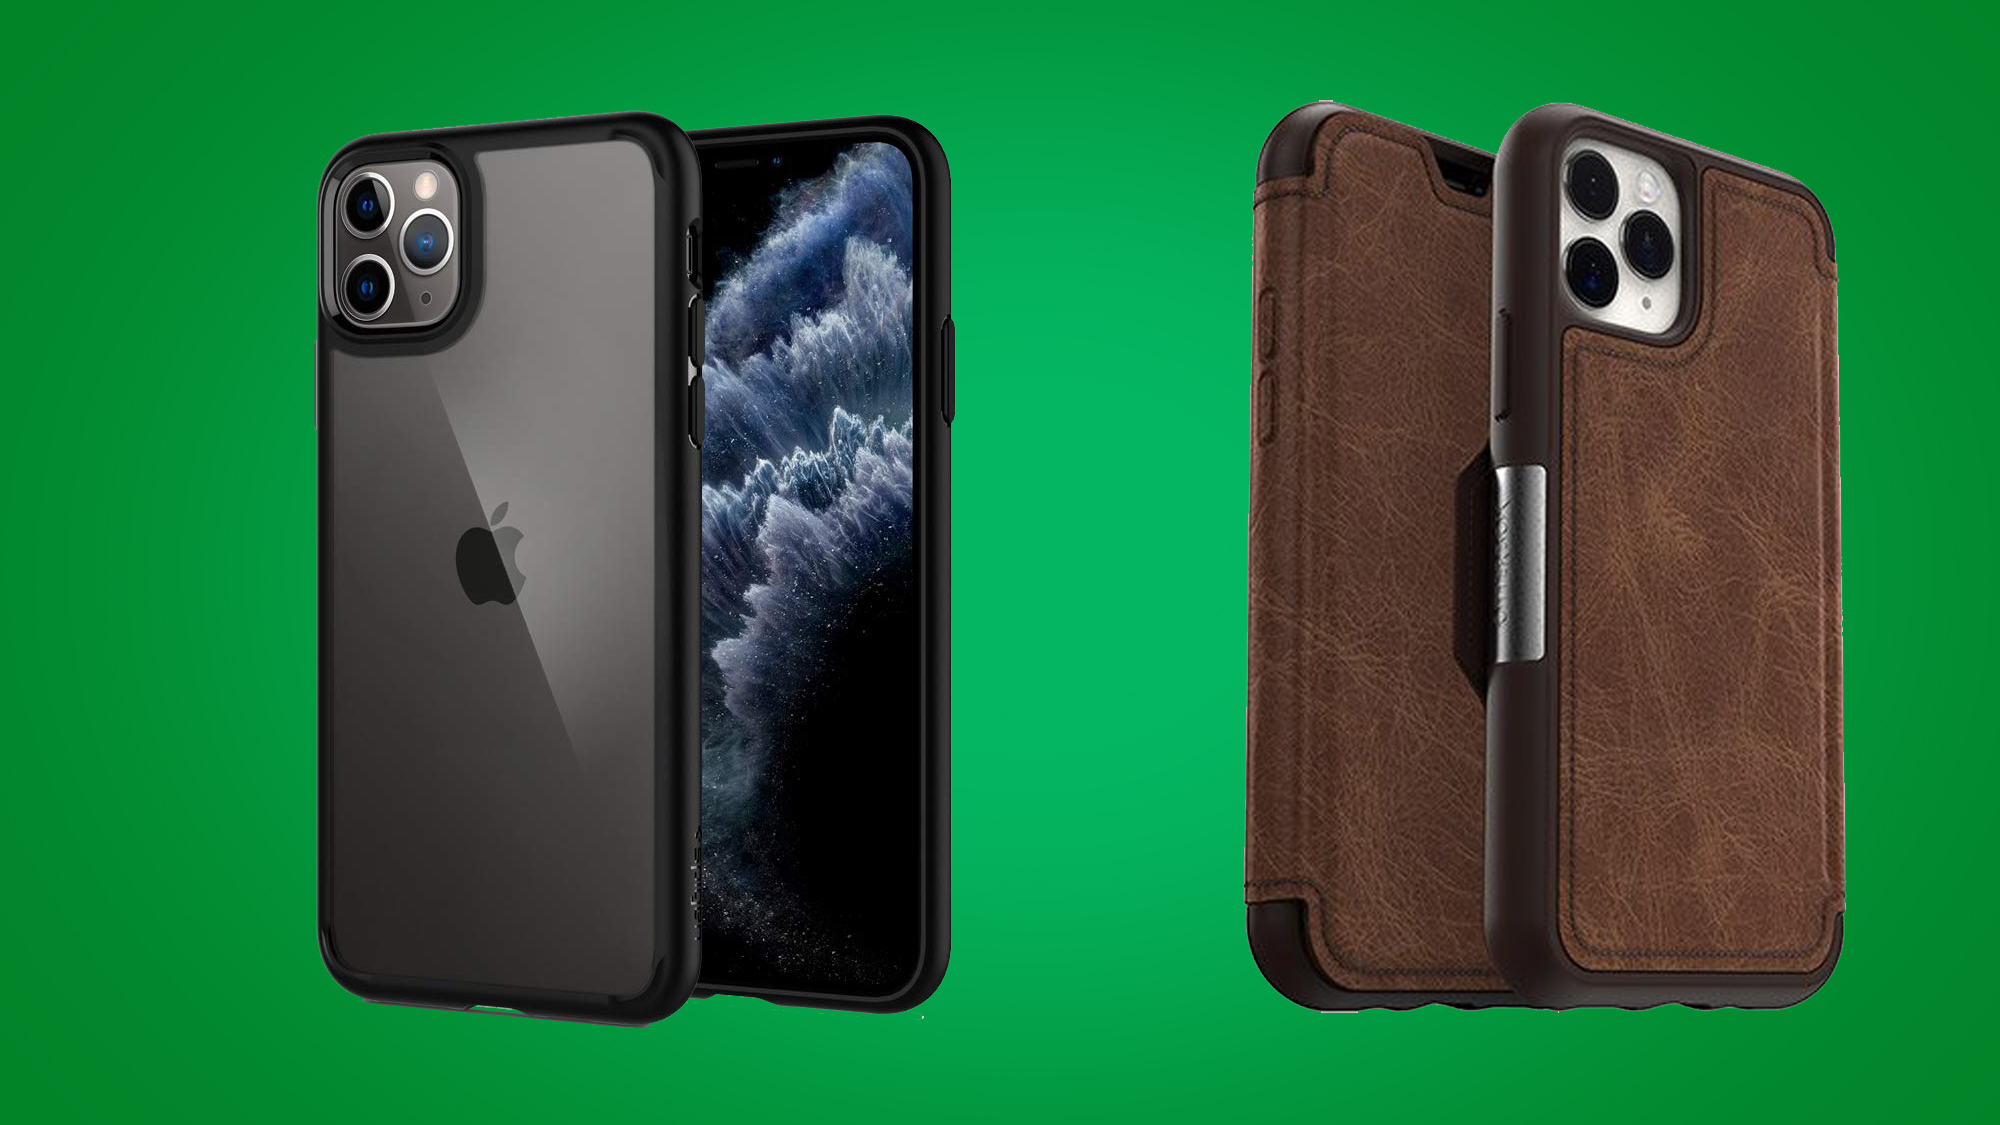 Best Iphone 11 Pro And Iphone 11 Pro Max Cases Protect Your New